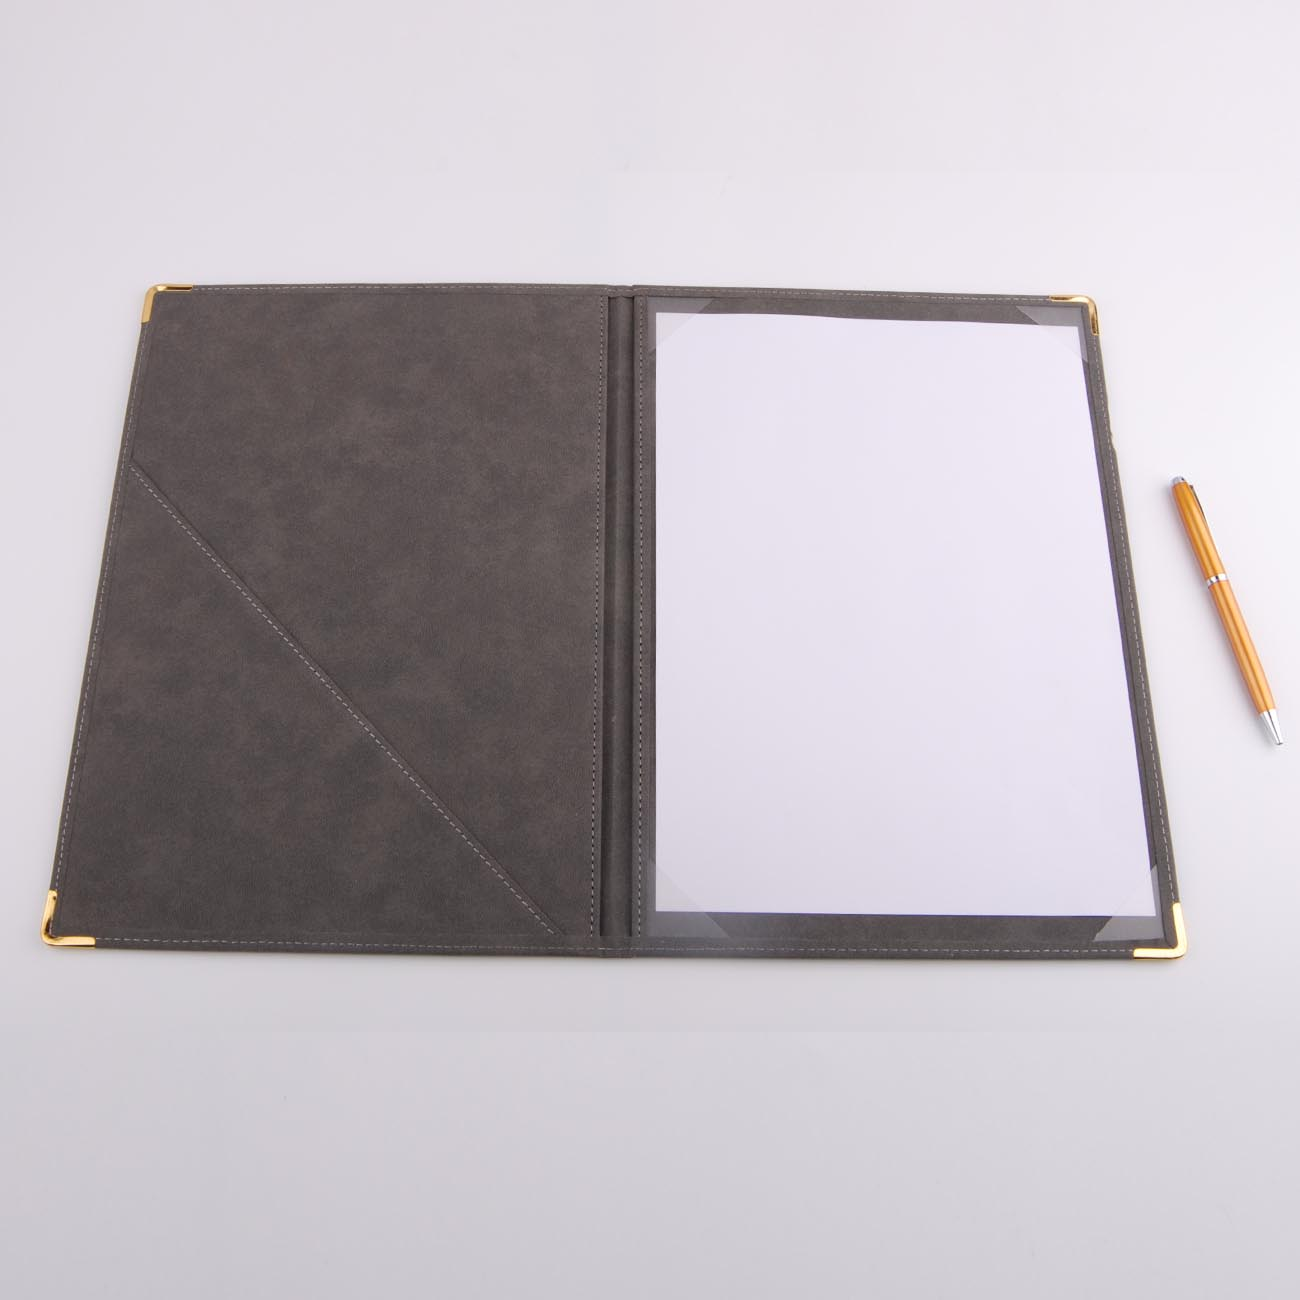 http://www.best-notebook.com/data/images/product/20170904114555_137.jpg